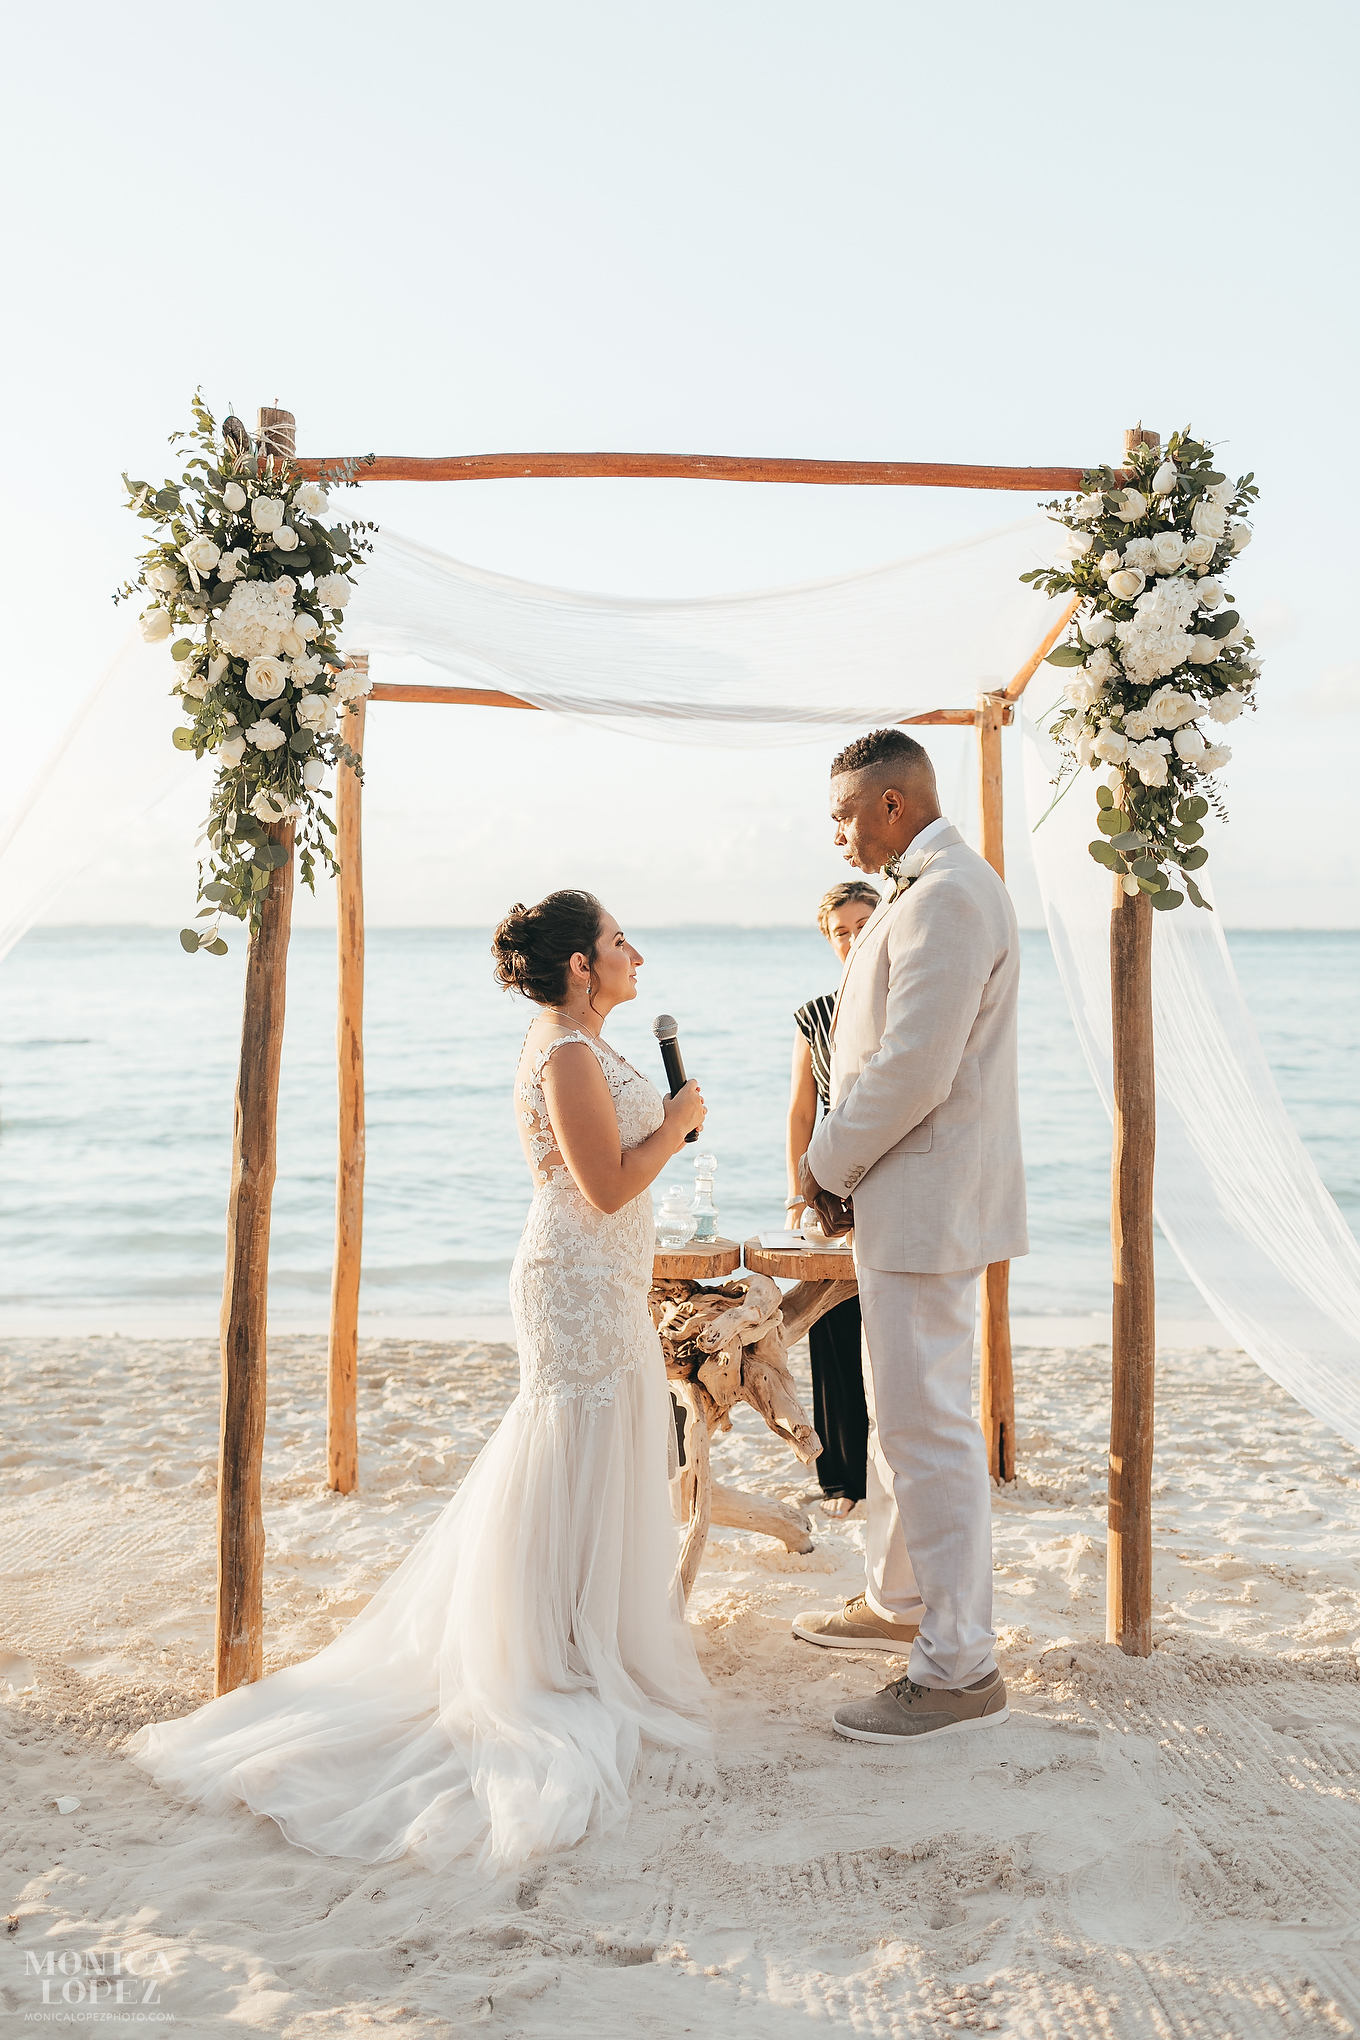 Isla Mujeres Playa Norte Sunset Wedding by Monica Lopez Photography